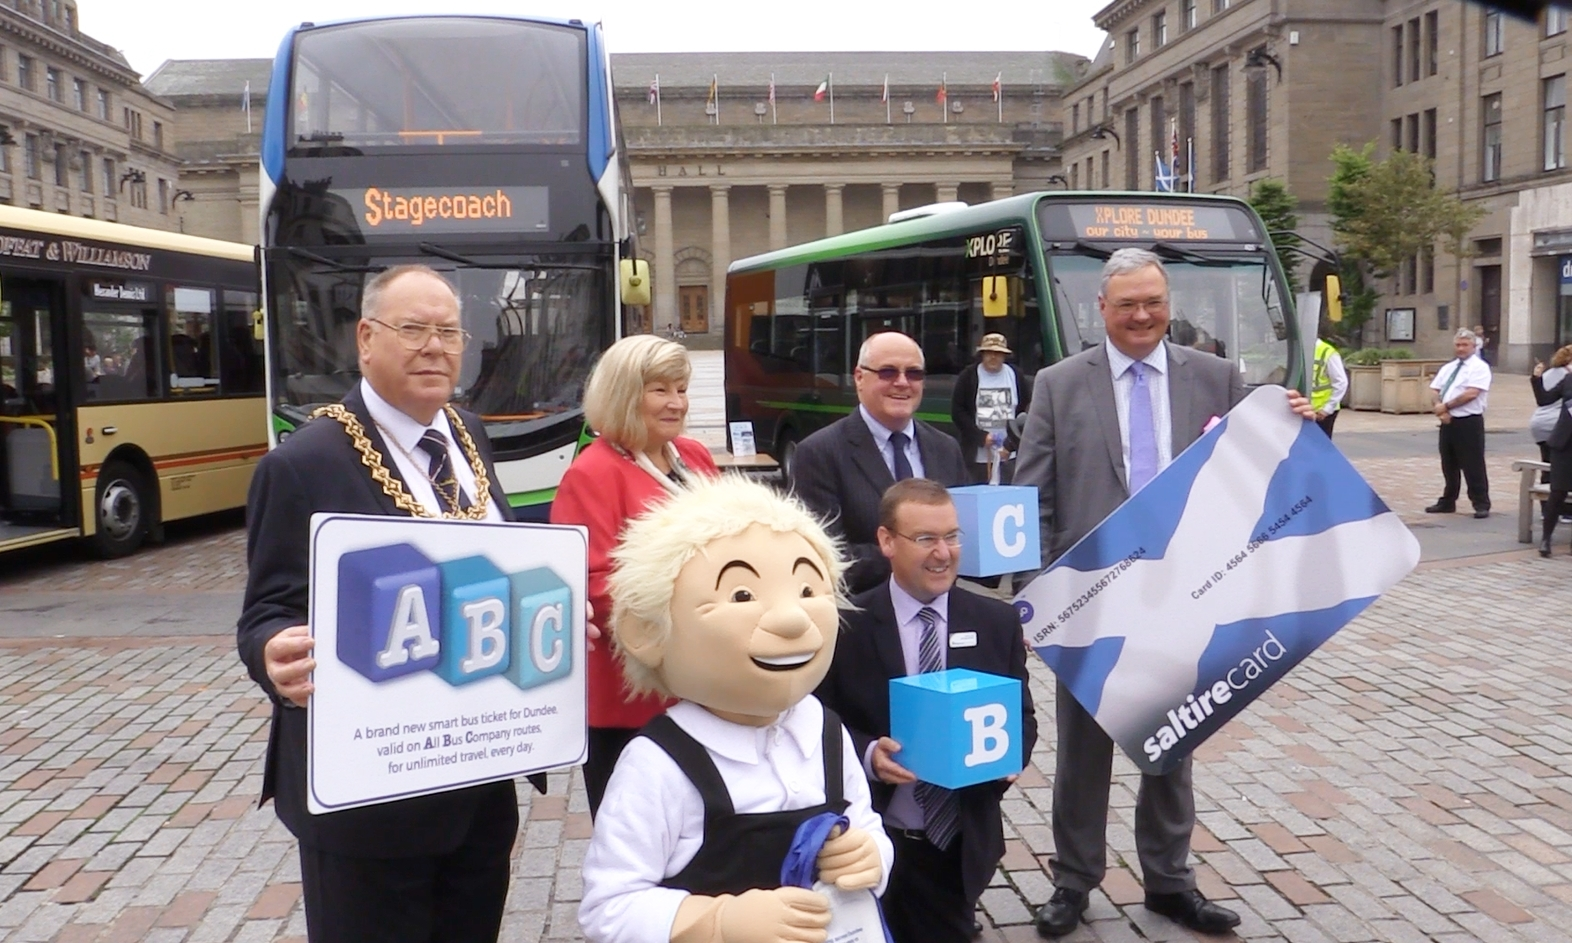 Oor Wullie helped launch the new ABC smart-card on Thursday